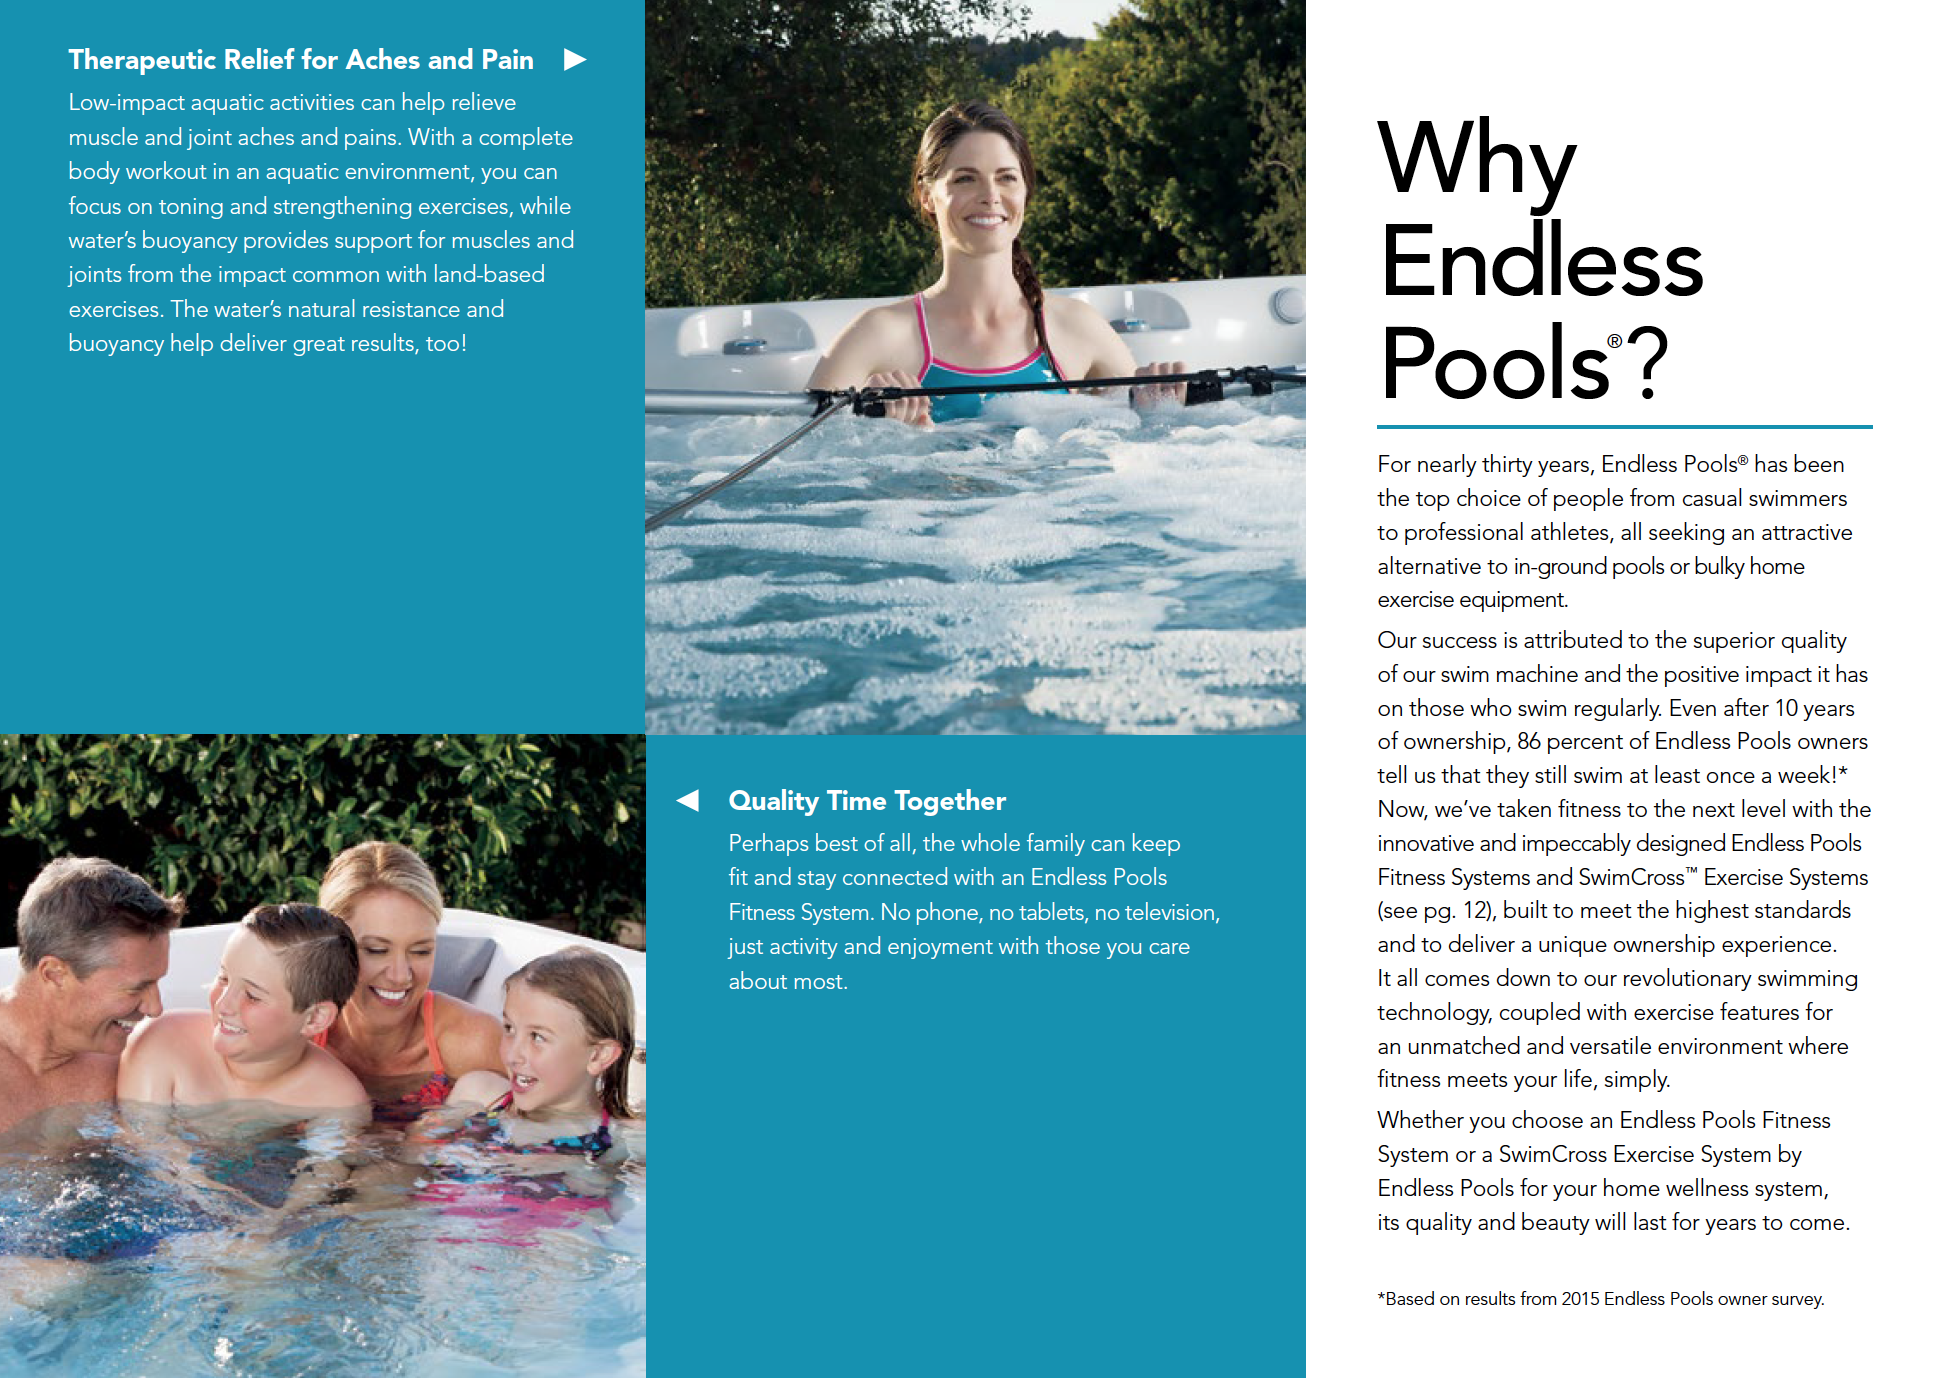 swim-spa-nz-endless-pools-2020-04-18-at-9.55.06-am-18.png